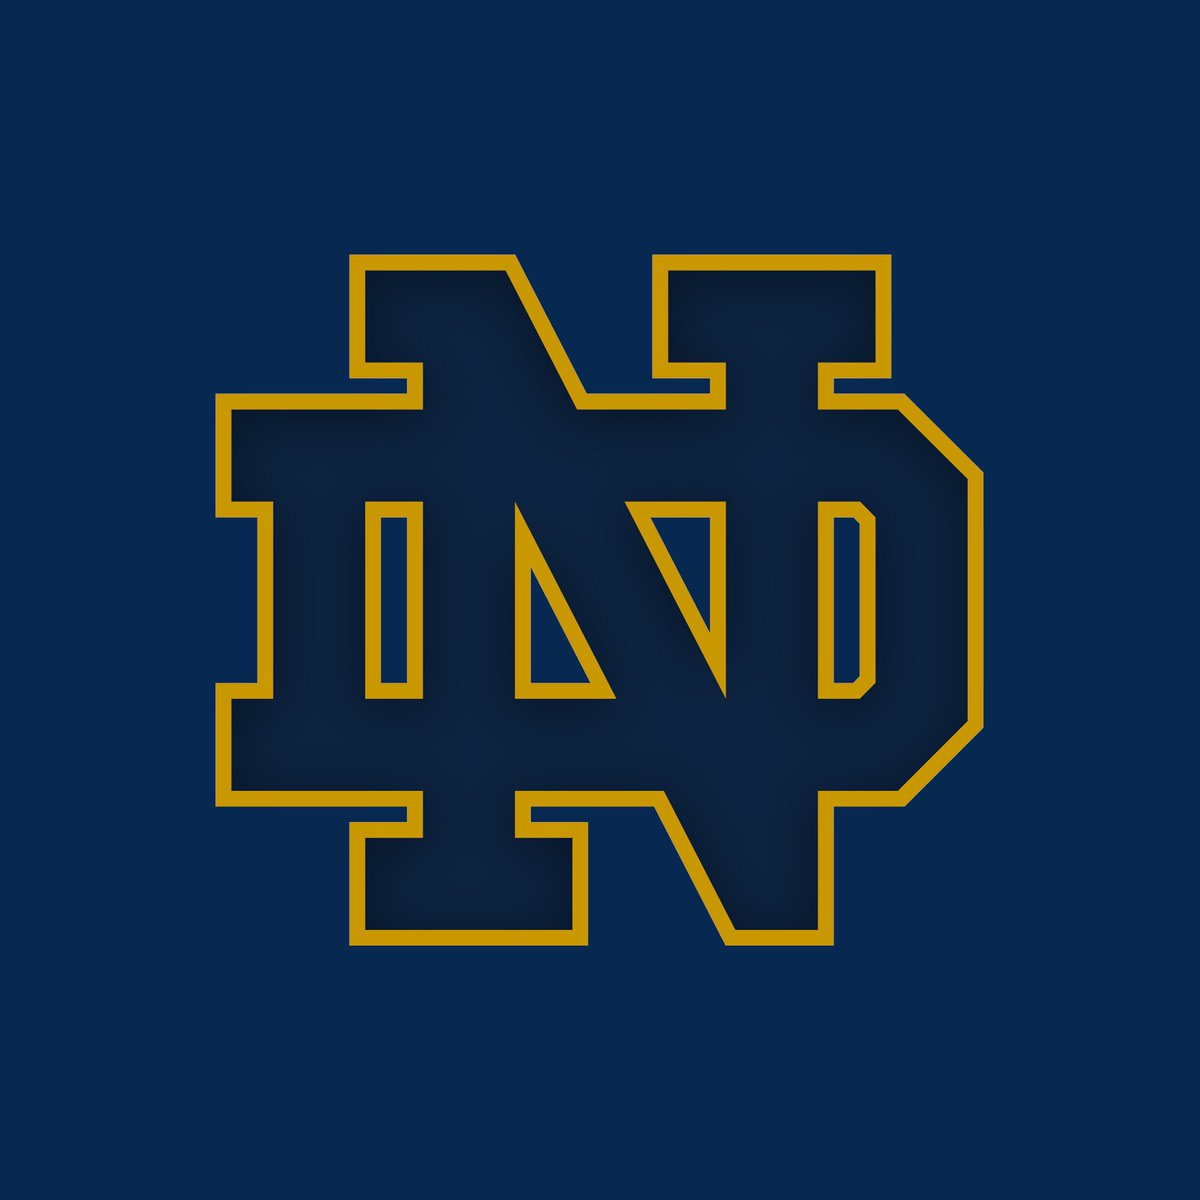 RT @CFBKings: Who wins?  RT - #7 Notre Dame Like - #3 Georgia  #NDvsUGA https://t.co/4nk5UOueu3